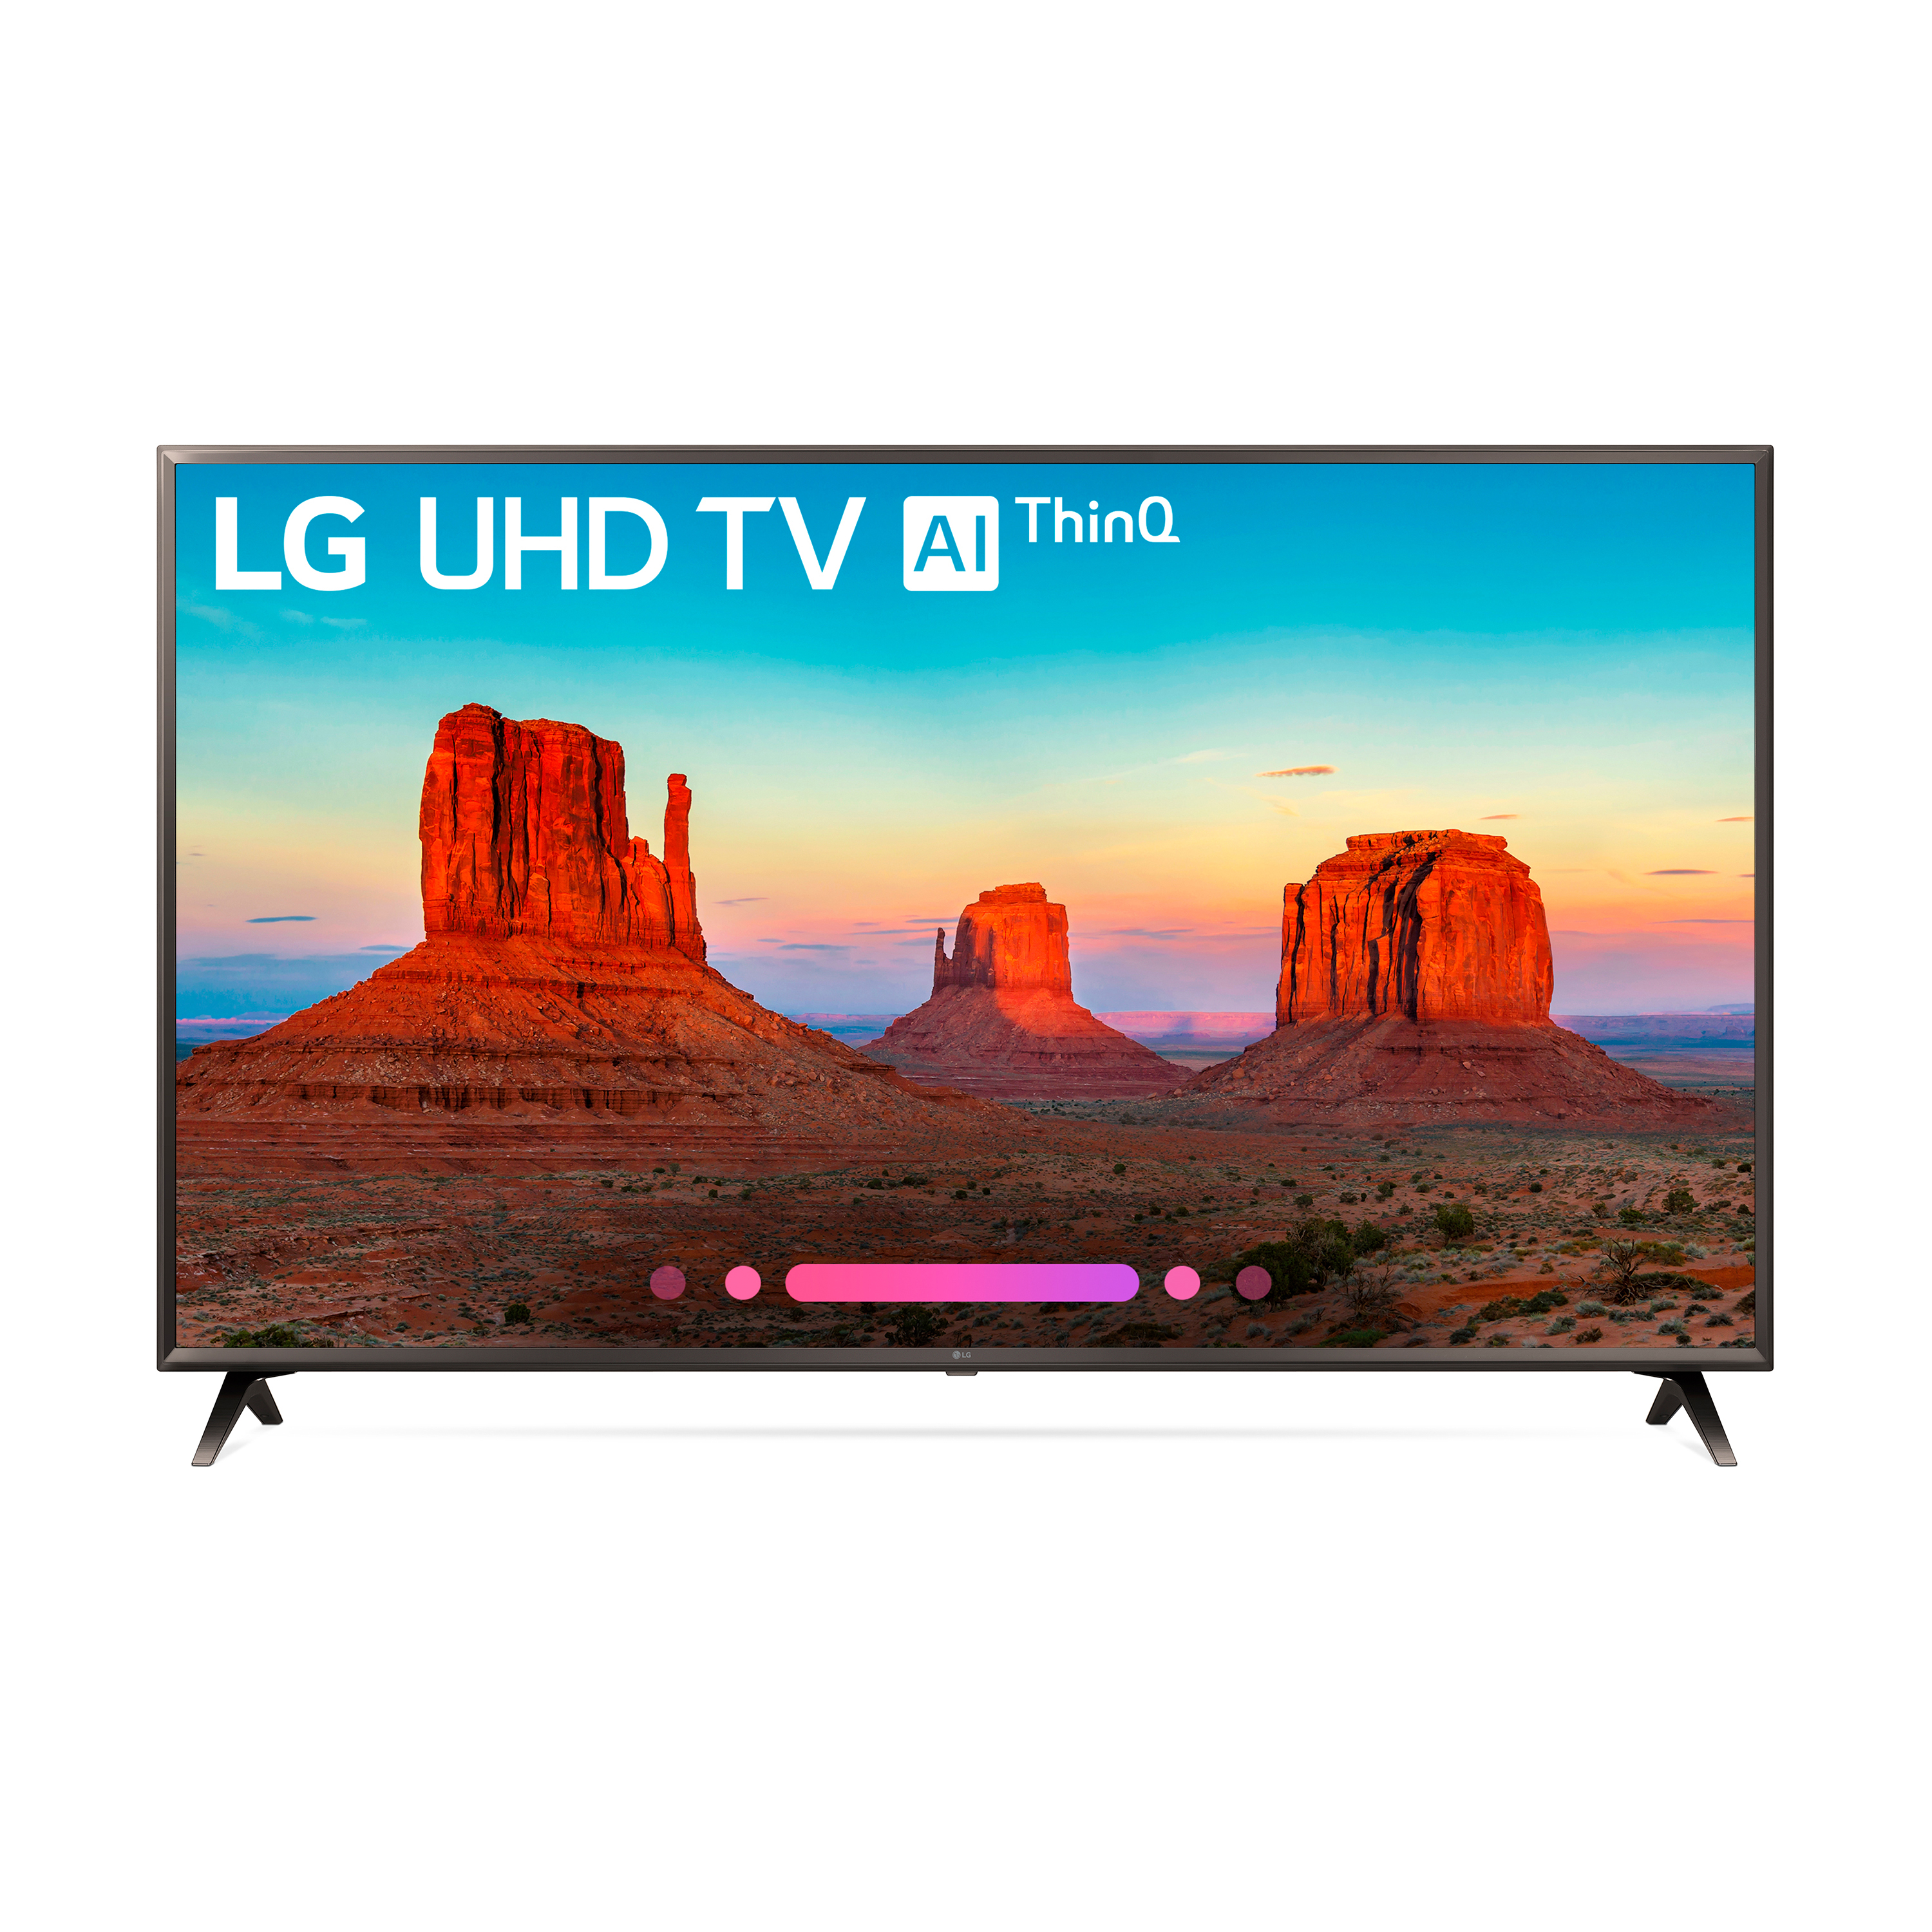 "LG 65"" Class 4K (2160) HDR Smart LED UHD TV w/AI ThinQ - 65UK6300PUE"